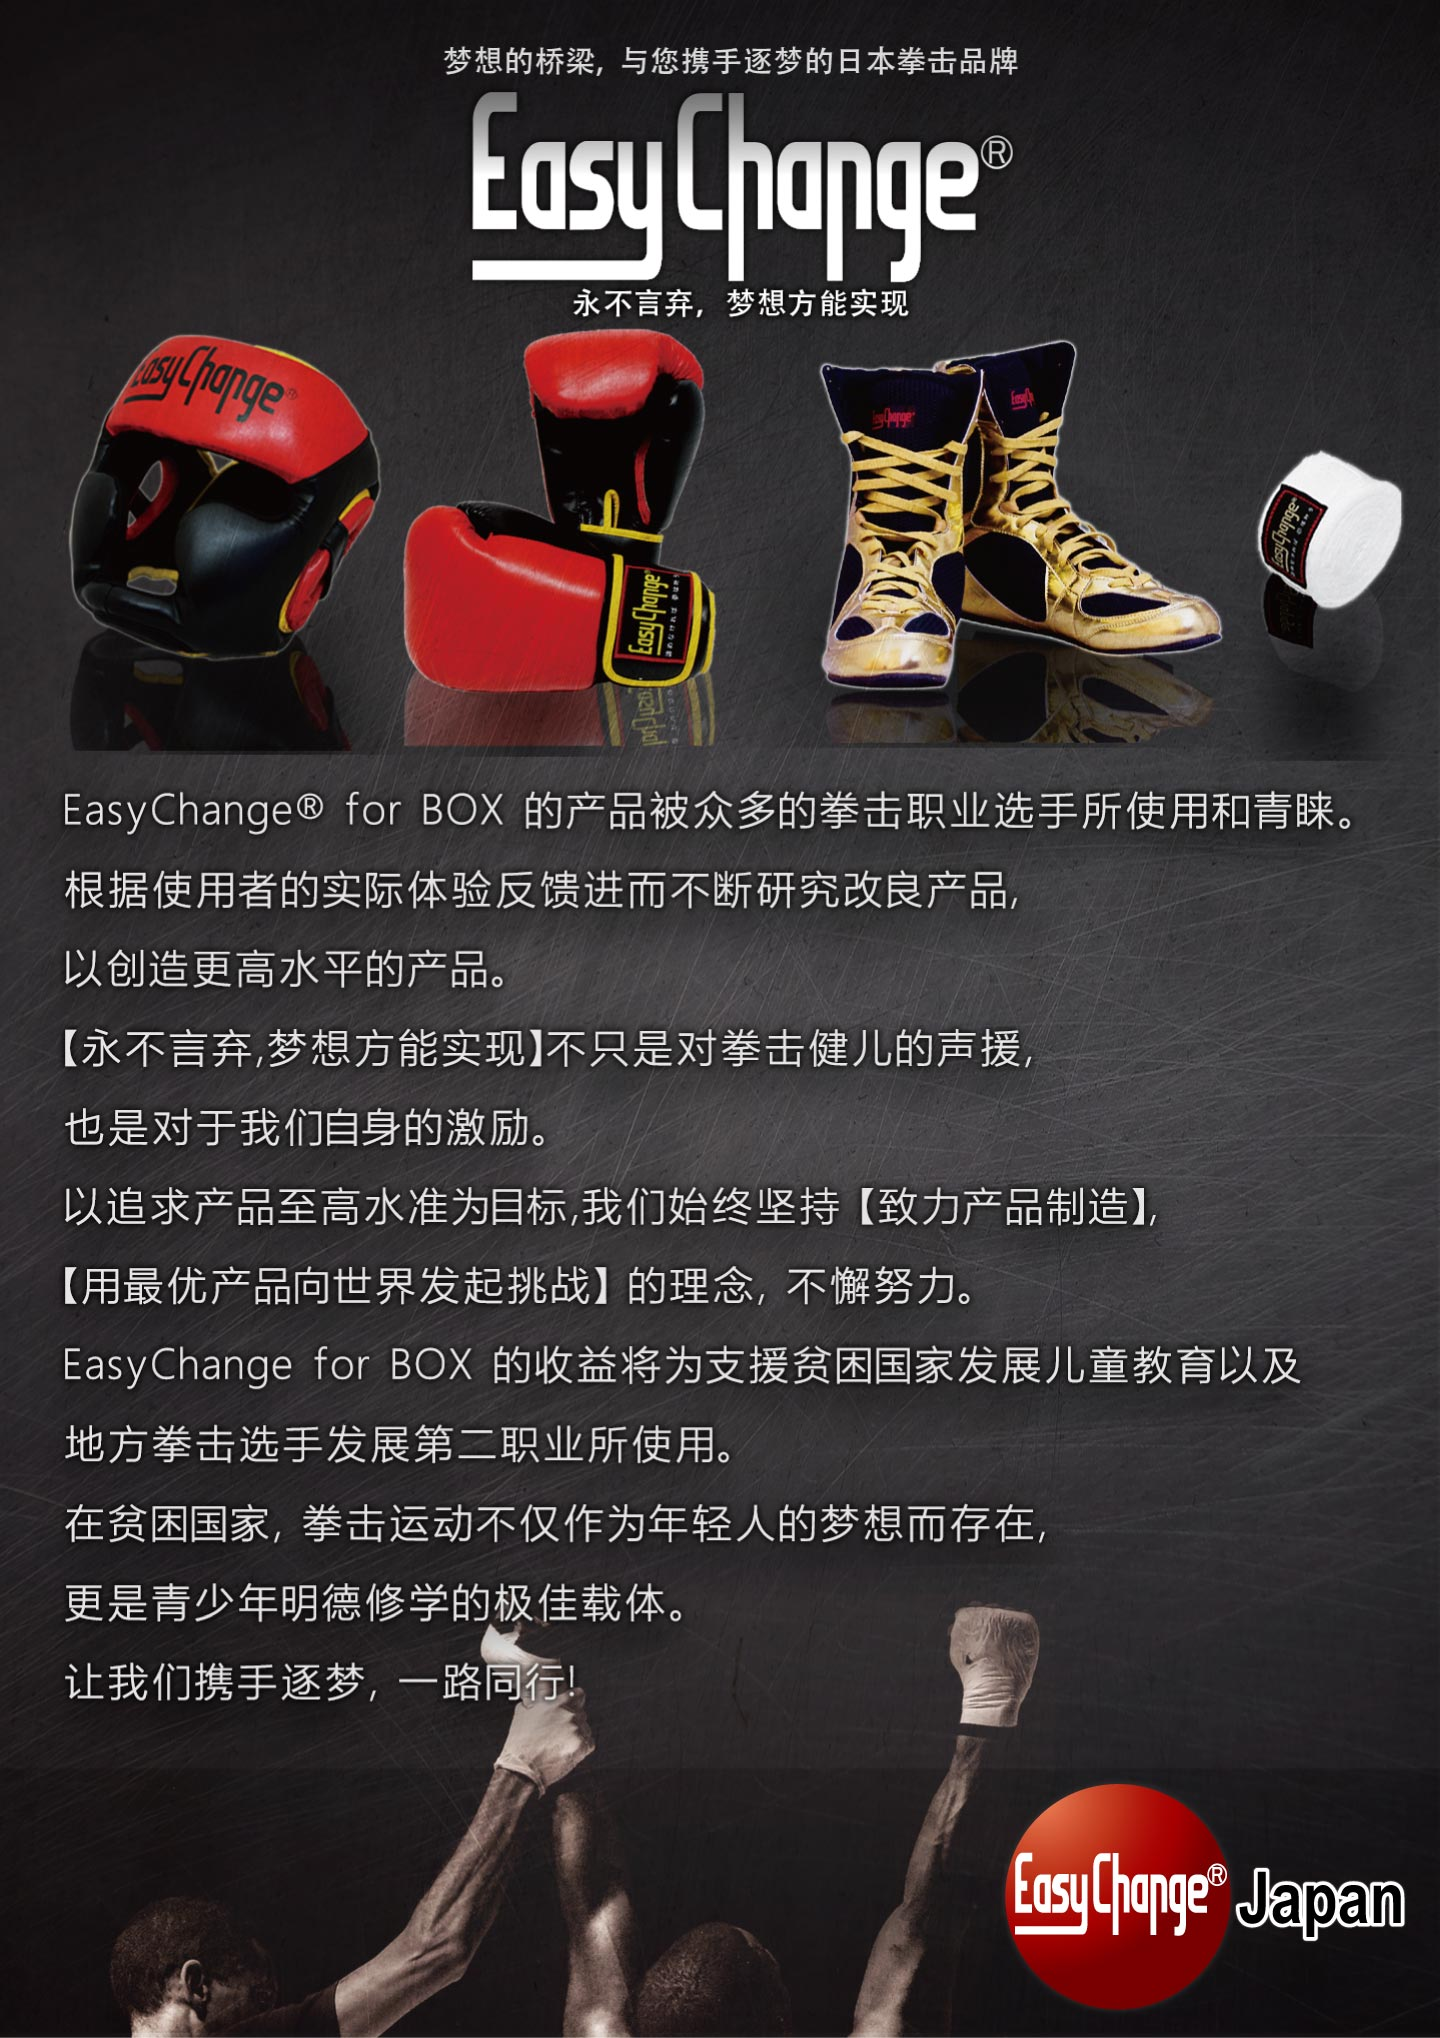 The Japanese boxing brand -EasyChange for BOX- The dream comes true if you do not give it up. We support your dream and ourselves continue challenging it without giving up our dream.